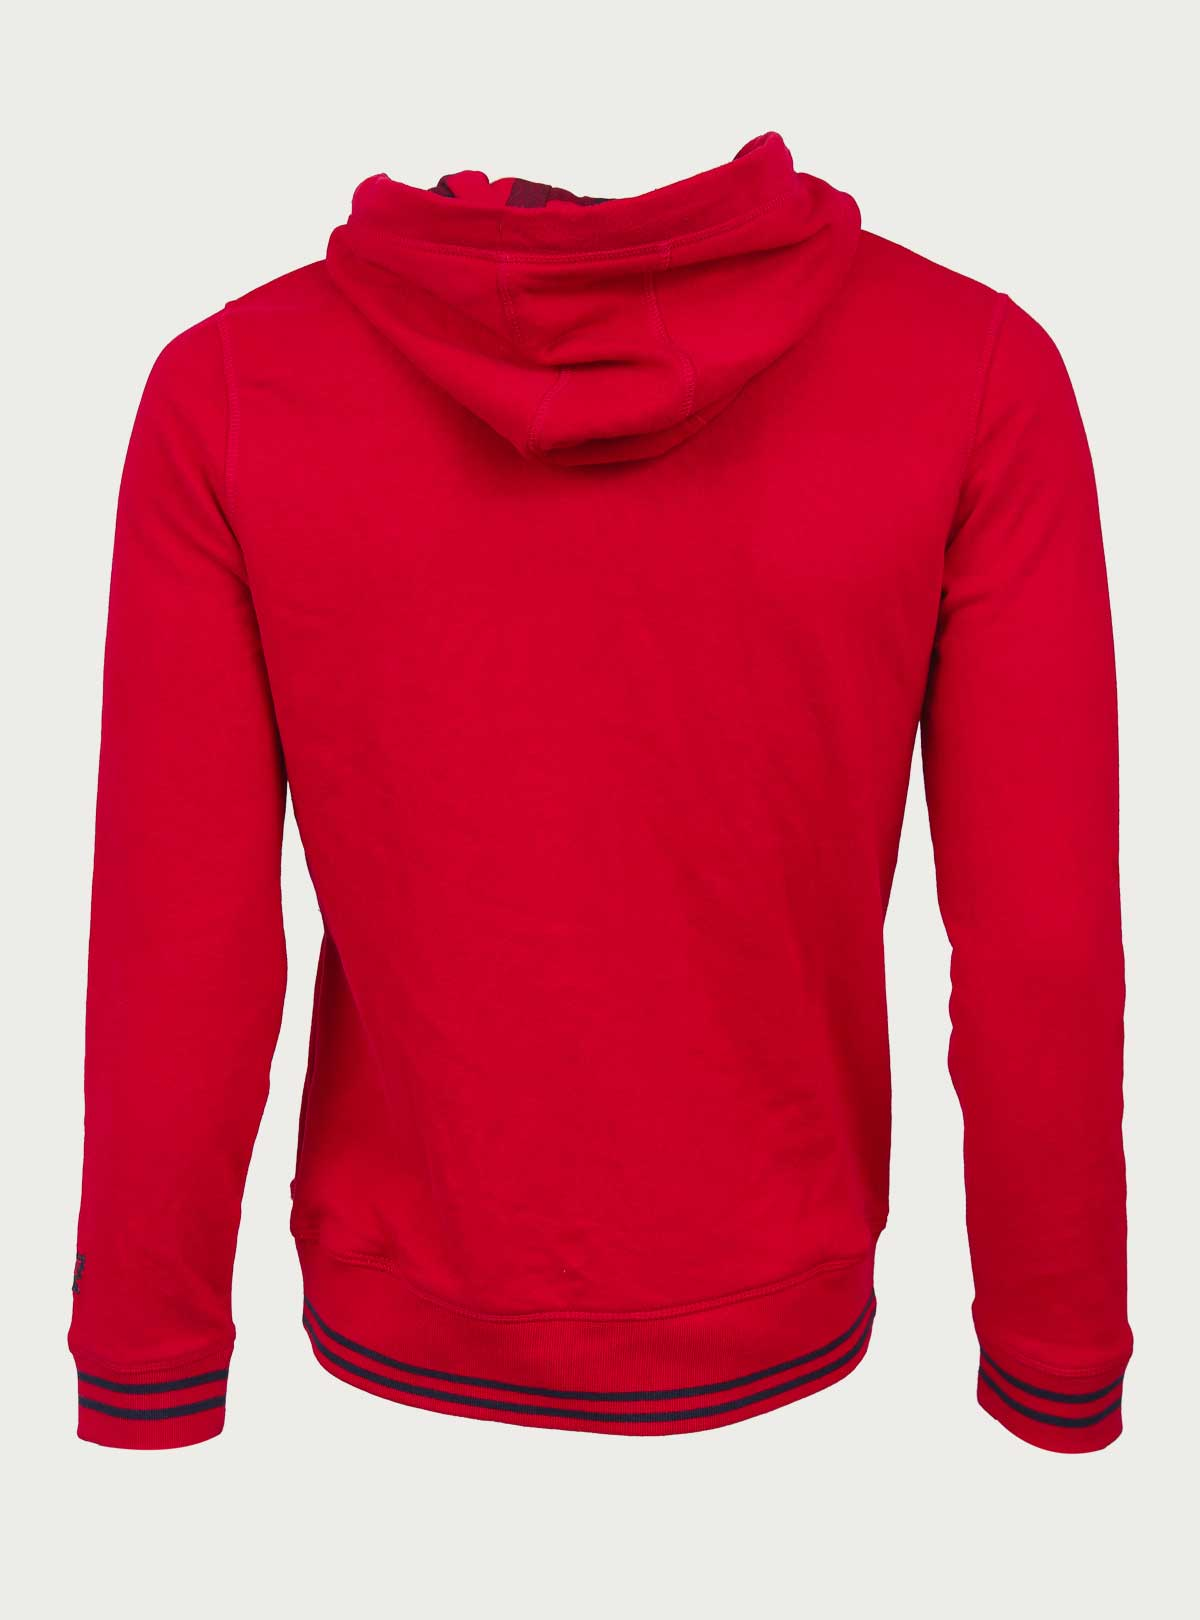 Winter Hoodie Sweater By CANADA | Esho.com | Best online shopping ...